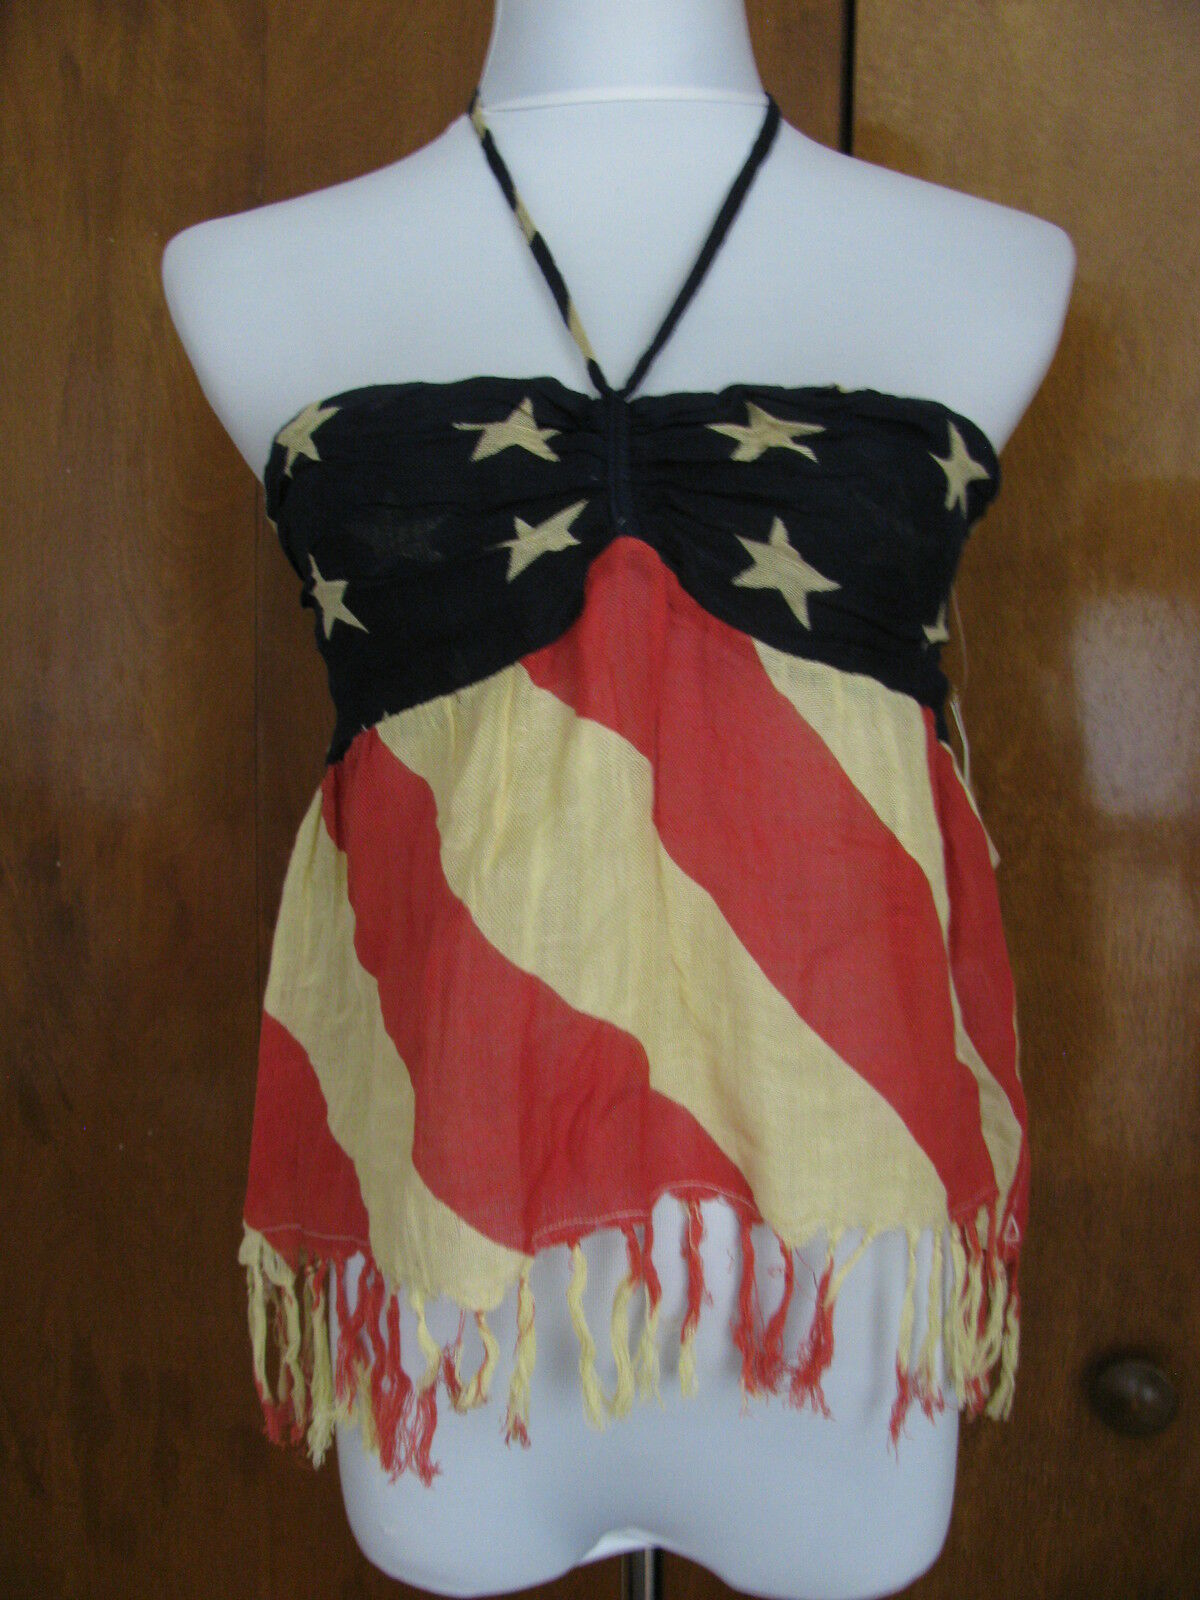 Ralph Laure Denim & Supply damen's Blau rot Weiß American flag top small NWT